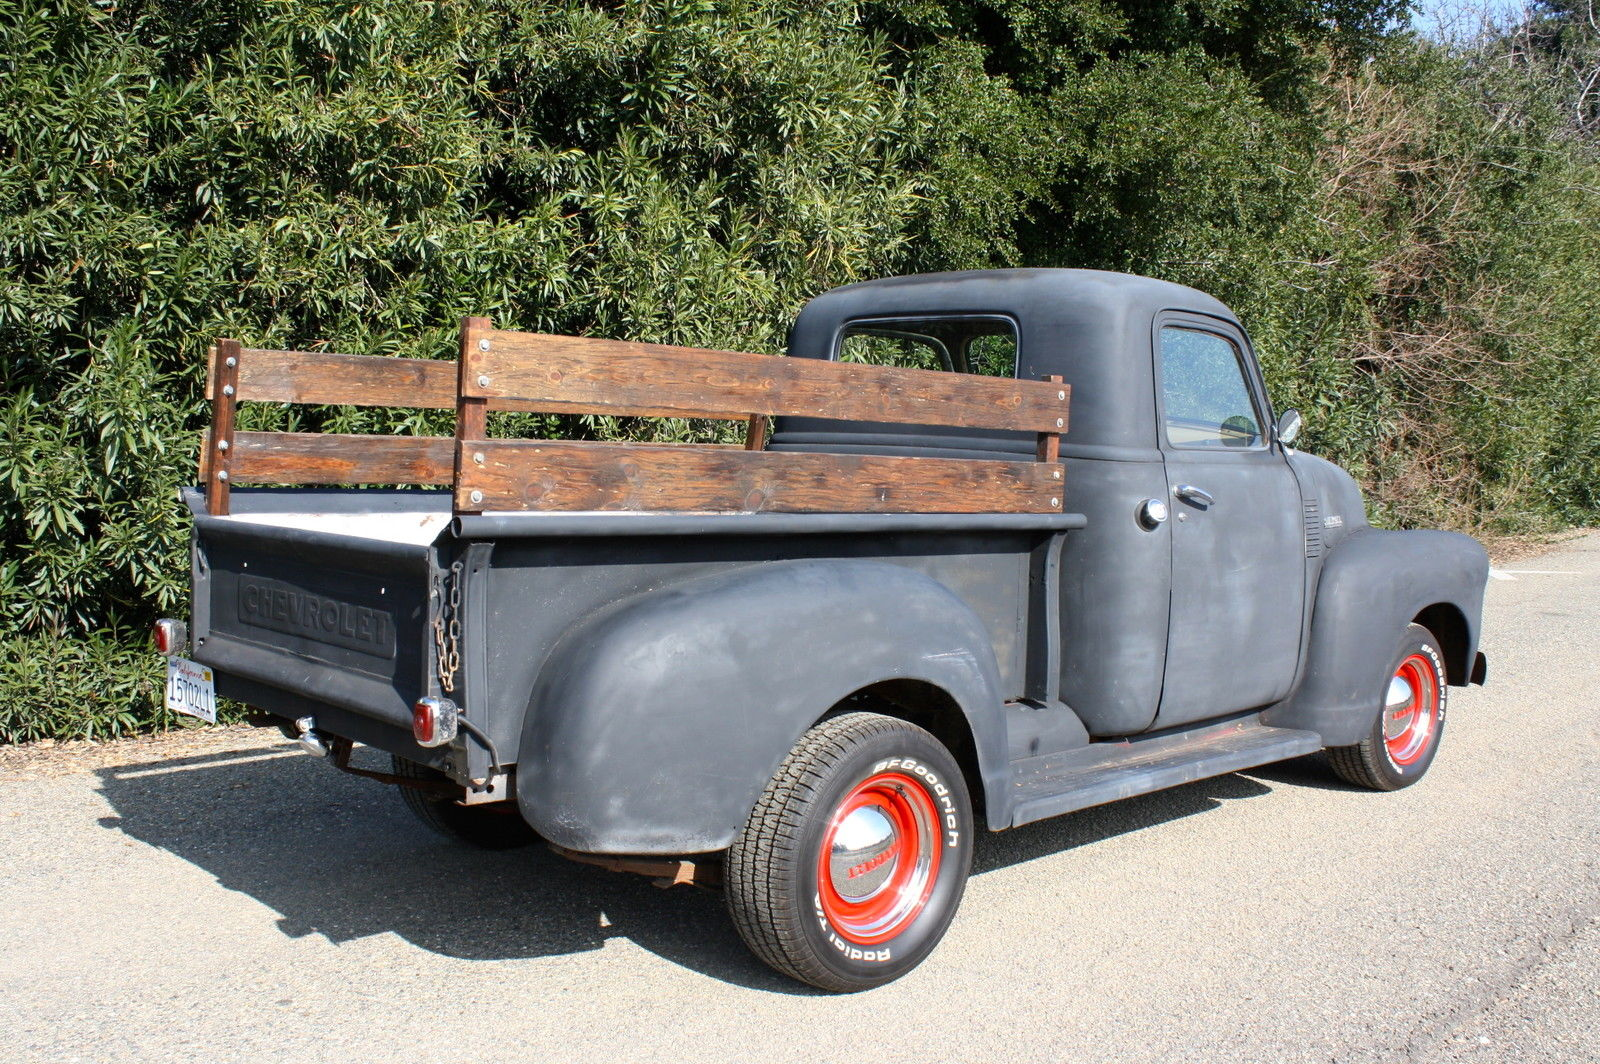 1950 Chevrolet Pickup V8 Hot Rod 1948 1949 1951 1952 1953 1954 1955 Ford Truck Pics For Sale In Yuba City California United States